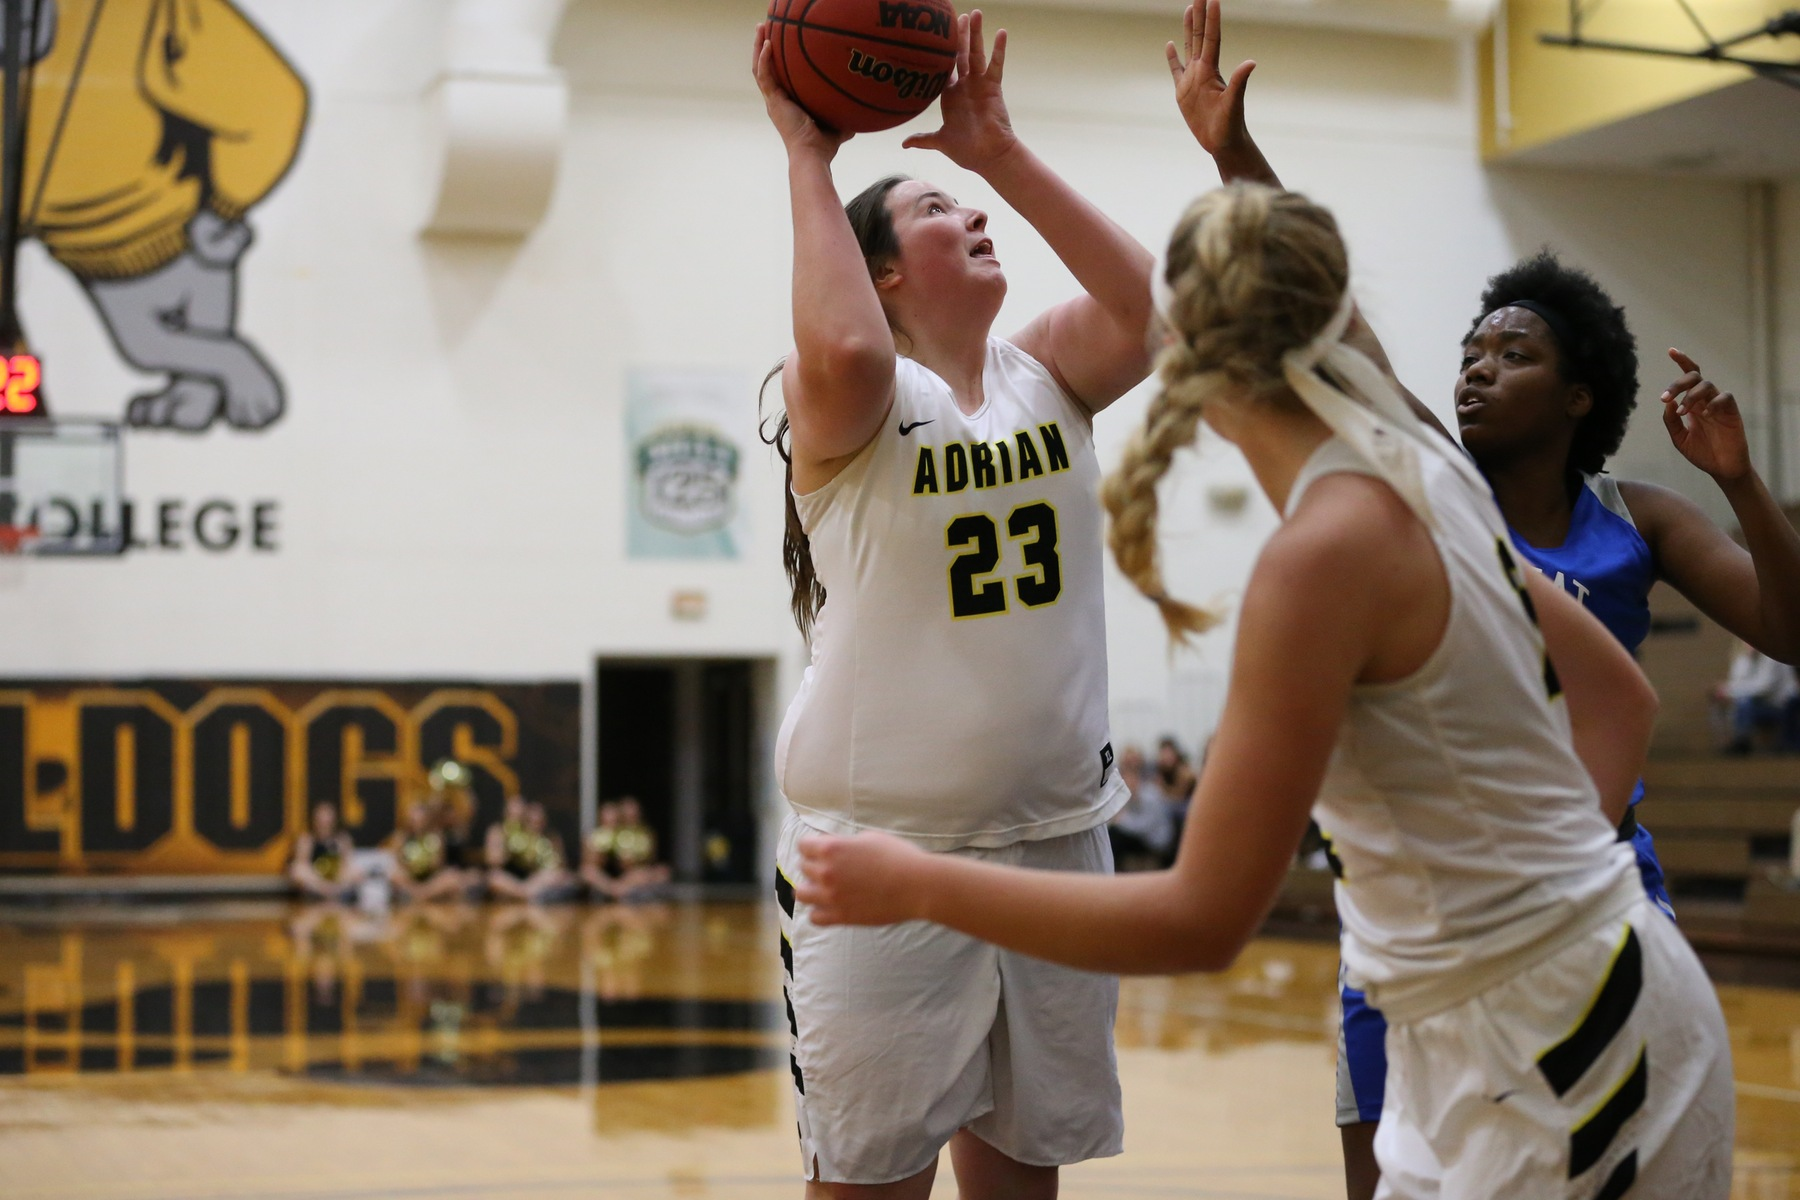 Katie Crawford had a statline of 13 points, nine rebounds, two assists, one steal and two blocks at Albion Saturday. (Action photo by Mike Dickie)